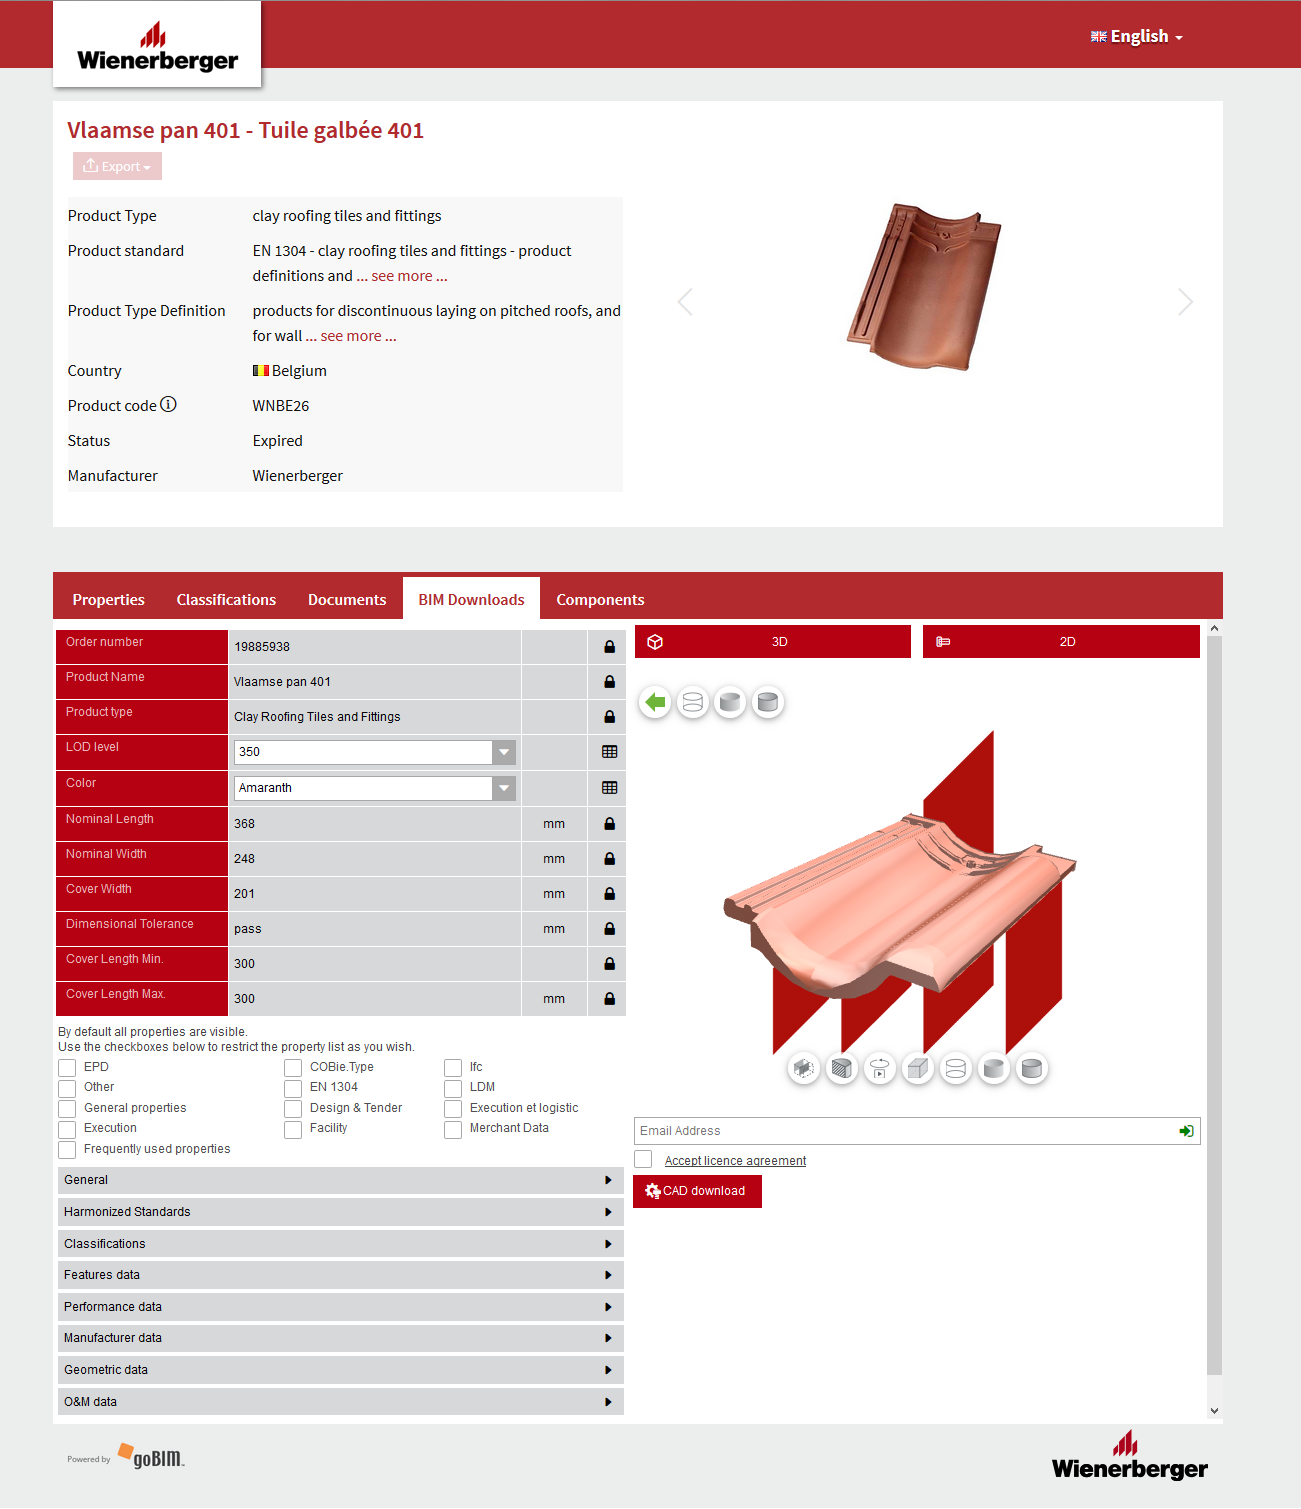 A preview of Wienerberger's product data platform: CADENAS (3D BIM models) & coBuilder (attributes)